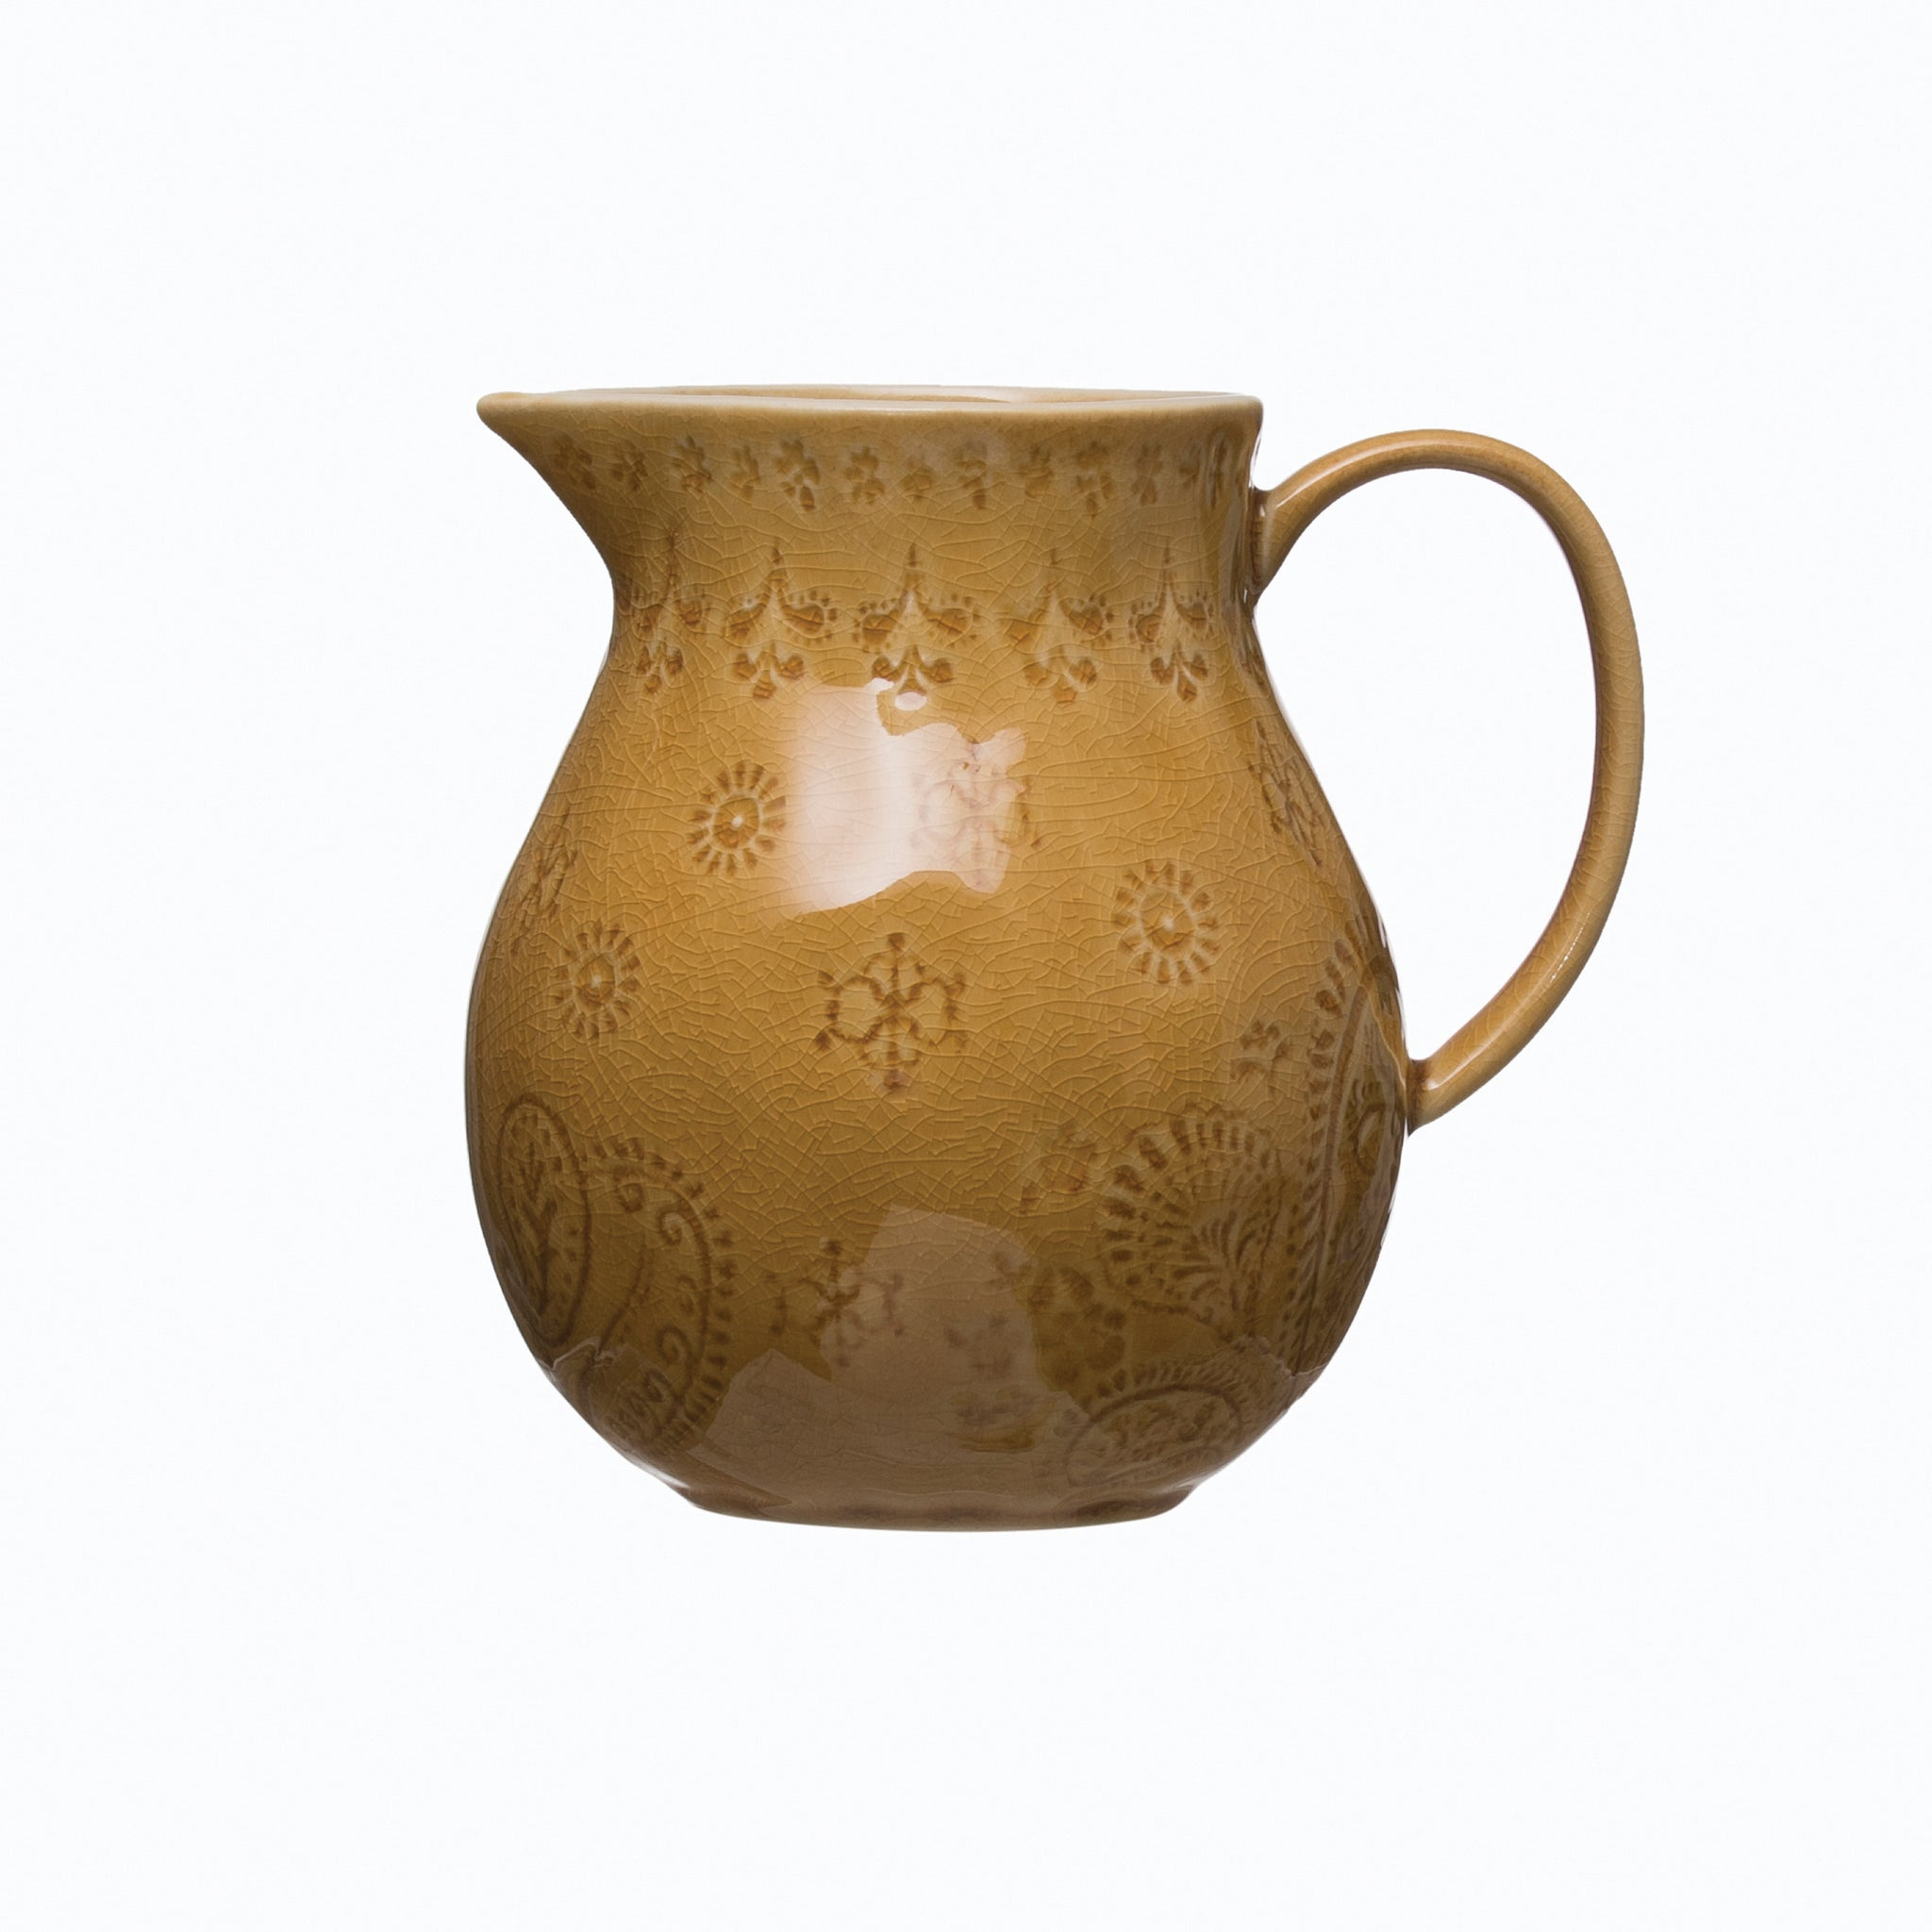 32 oz. Debossed Stoneware Pitcher with Crackle Glaze Finish (Each One Will Vary)